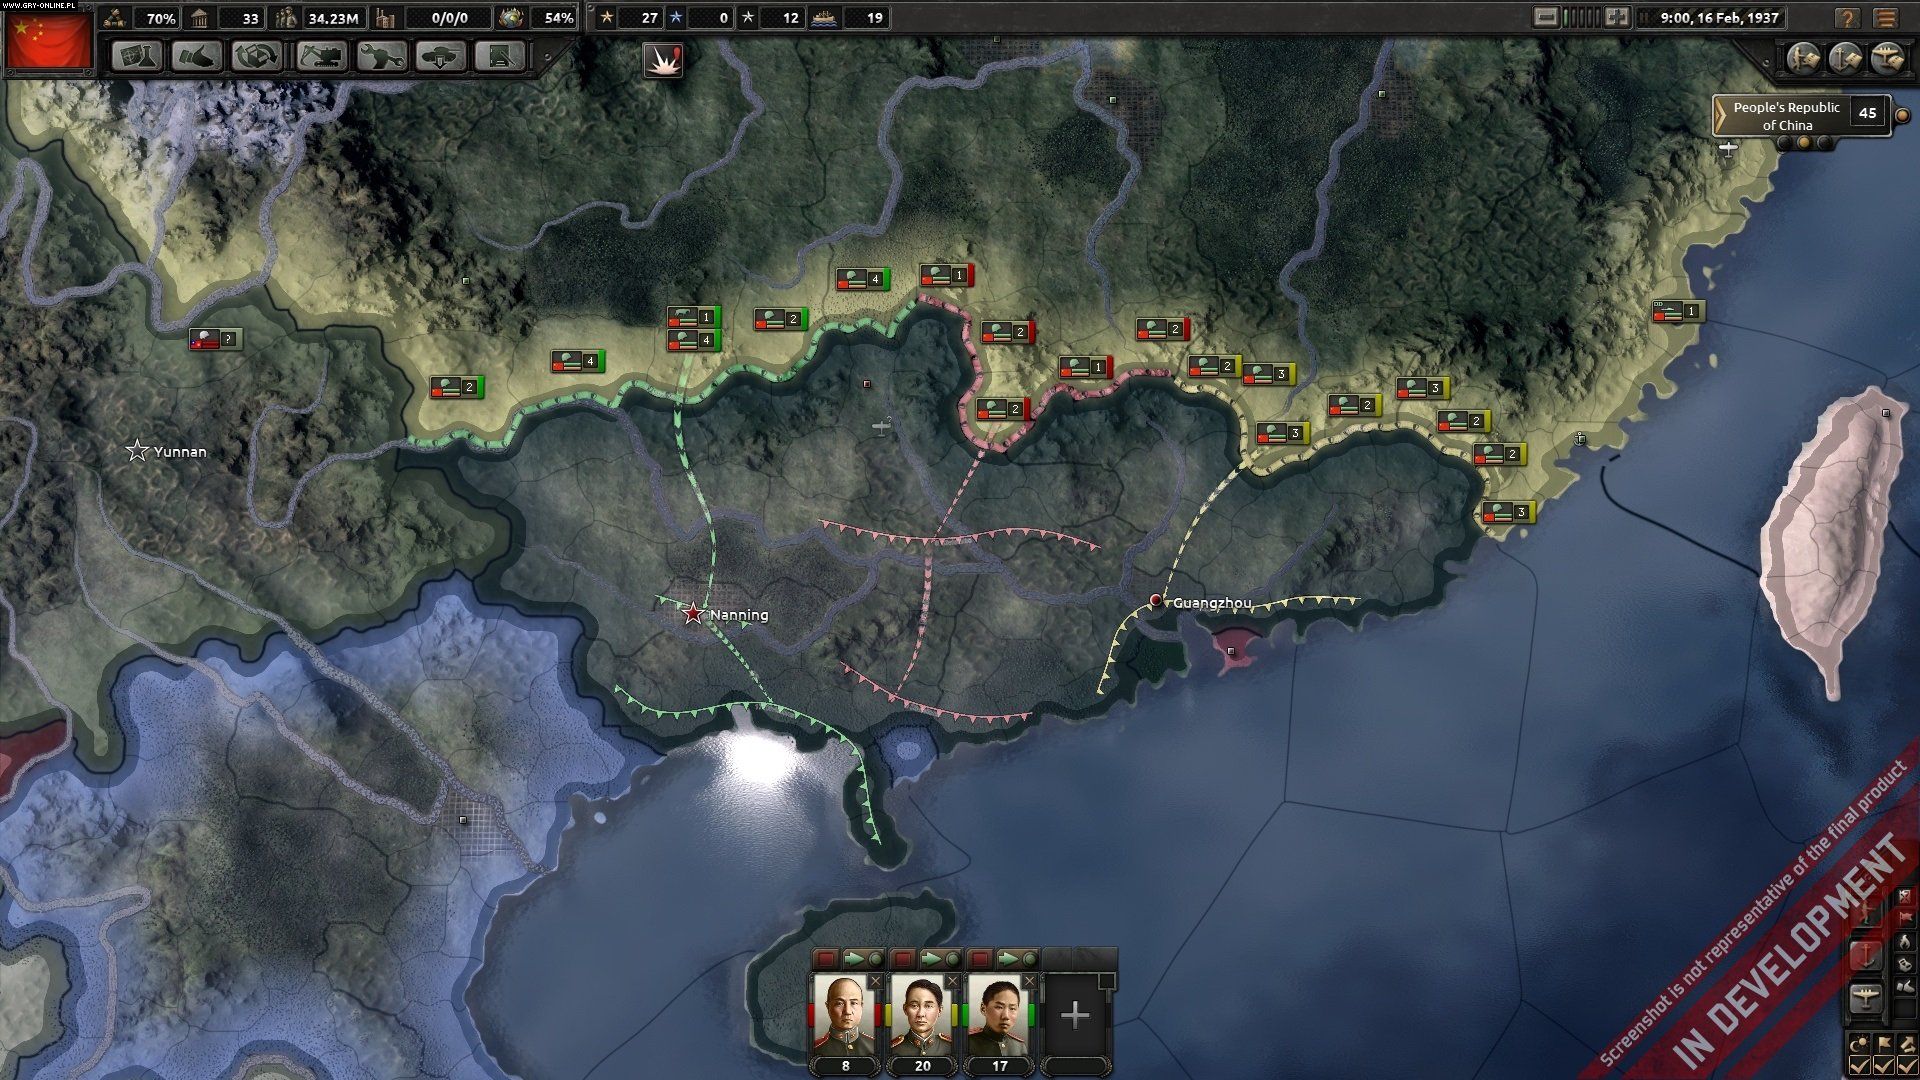 Hearts of Iron IV PC Games Image 8/32, Paradox Development Studio, Paradox Interactive